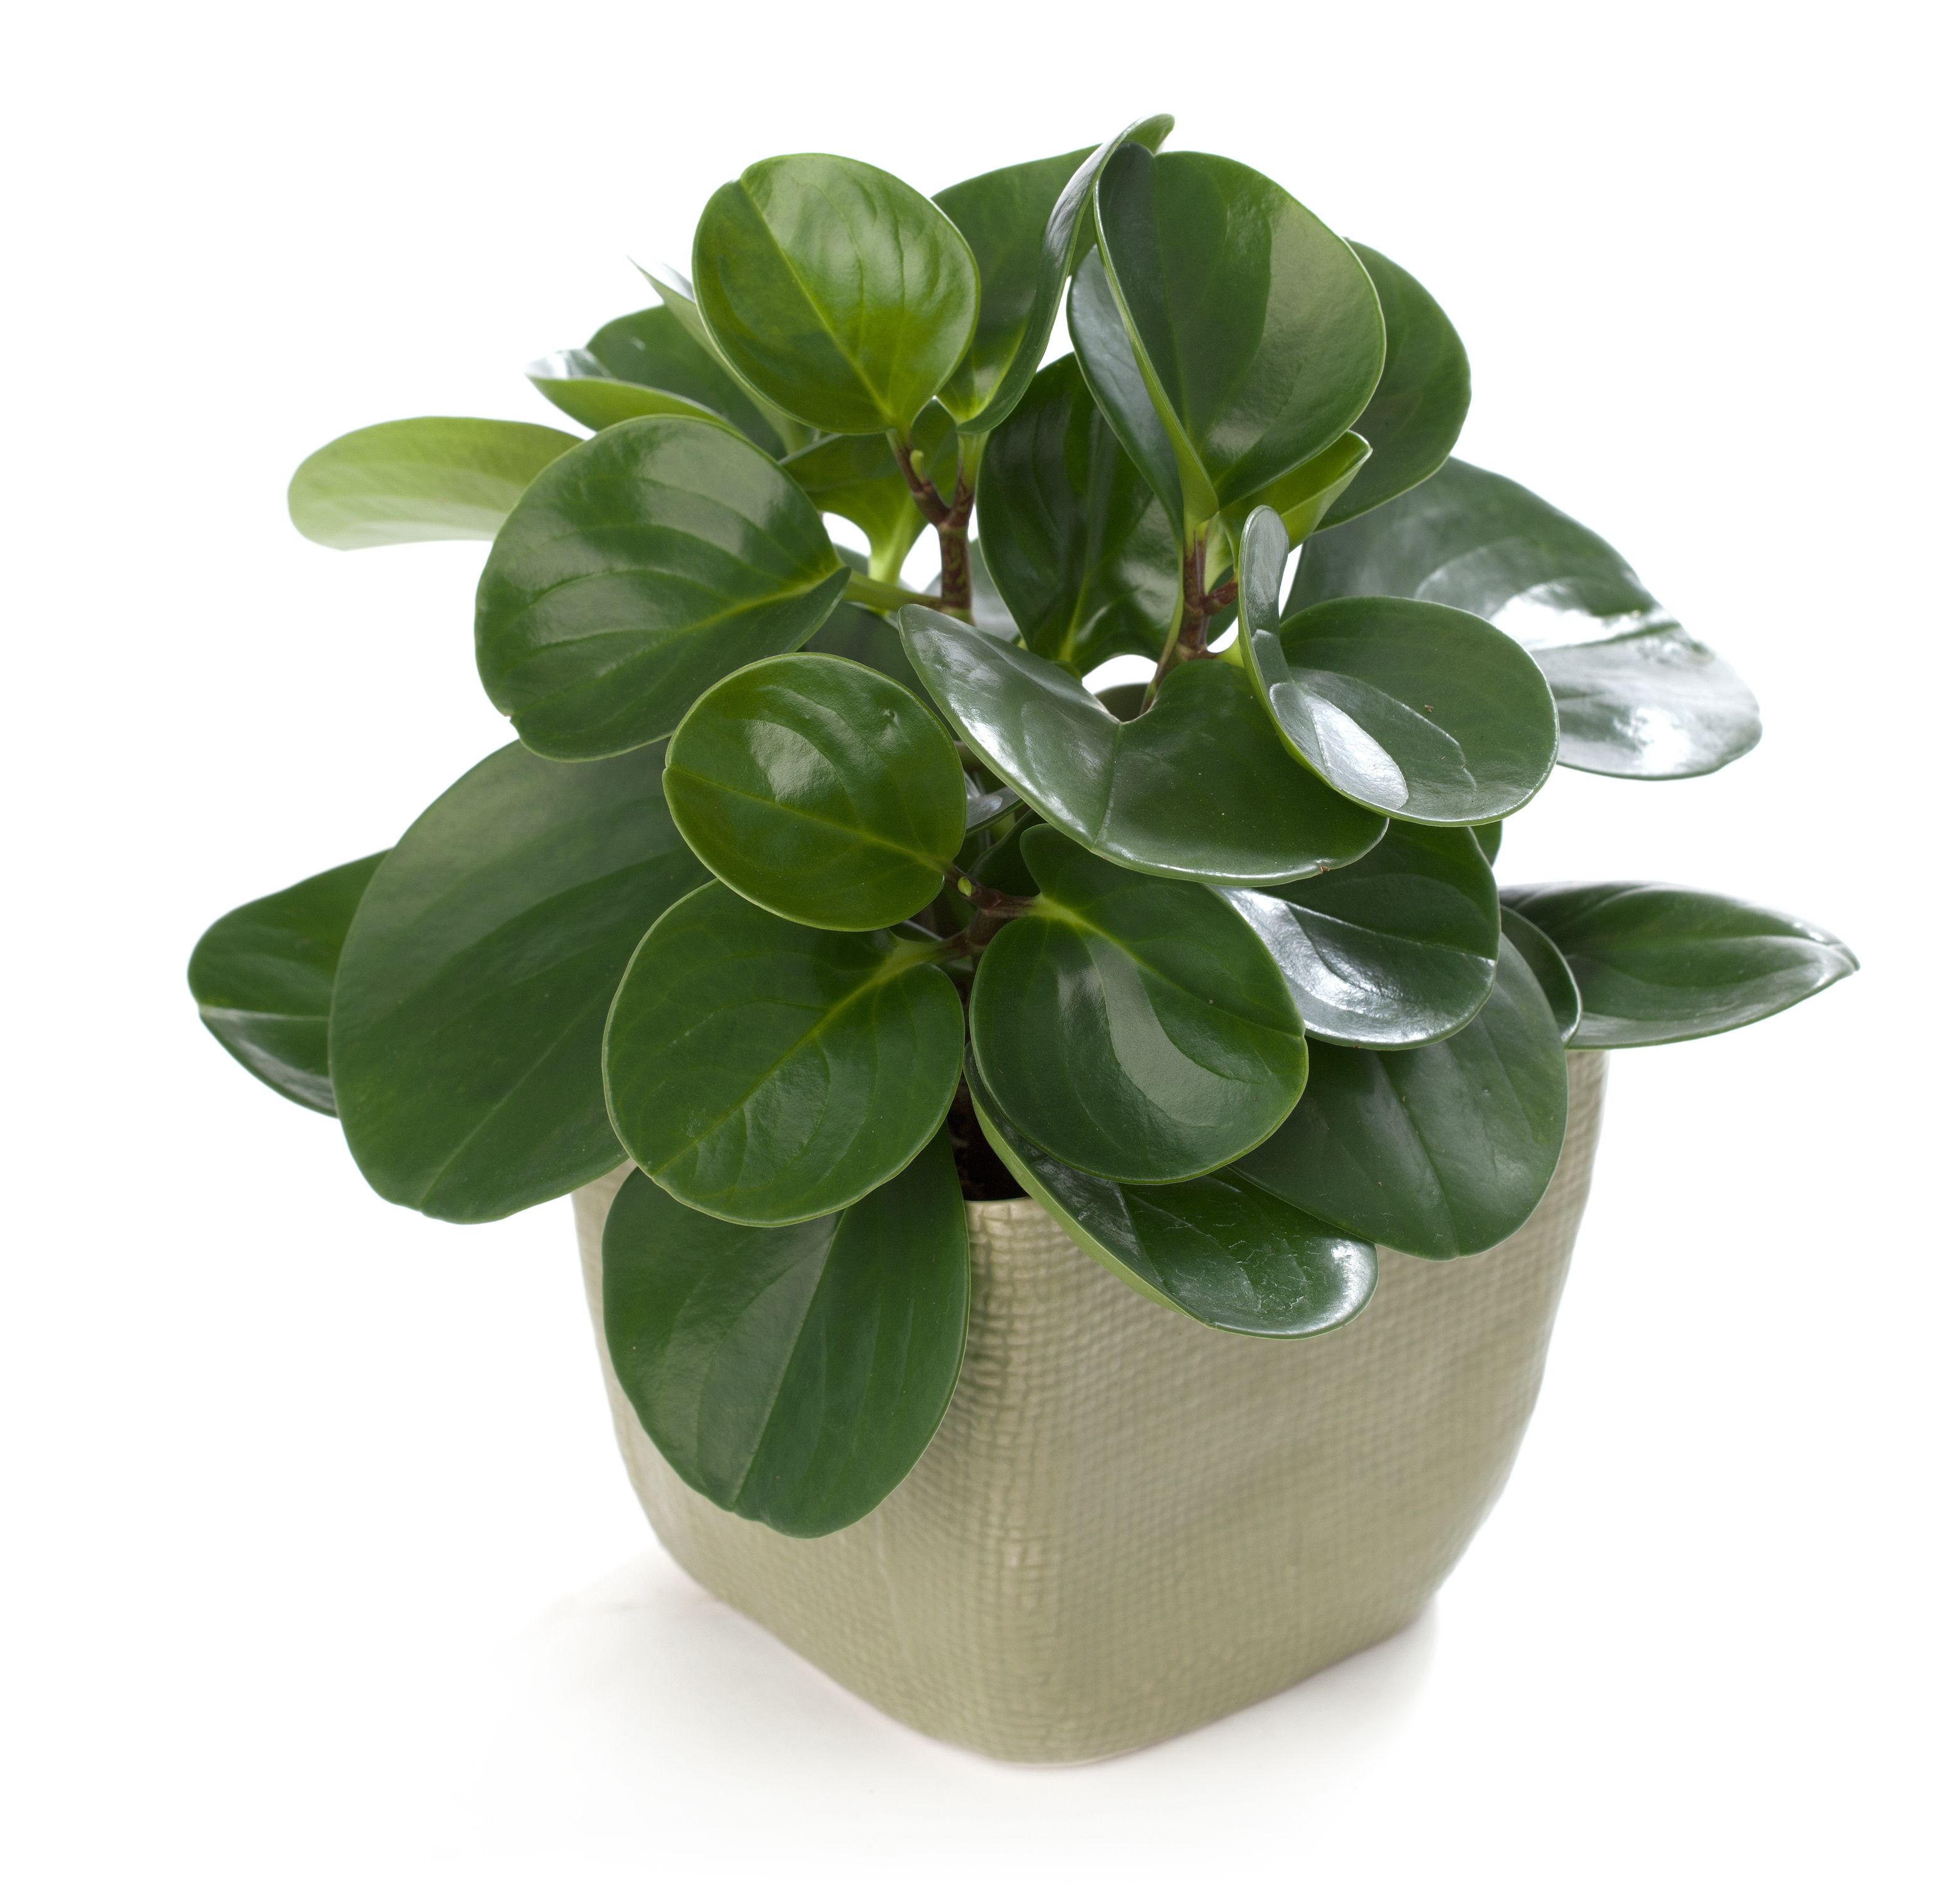 Peperomia obtusifolia kitty safe plants pinterest rubber plant high humidity and plants - Five indoor plants that absorb humidity ...